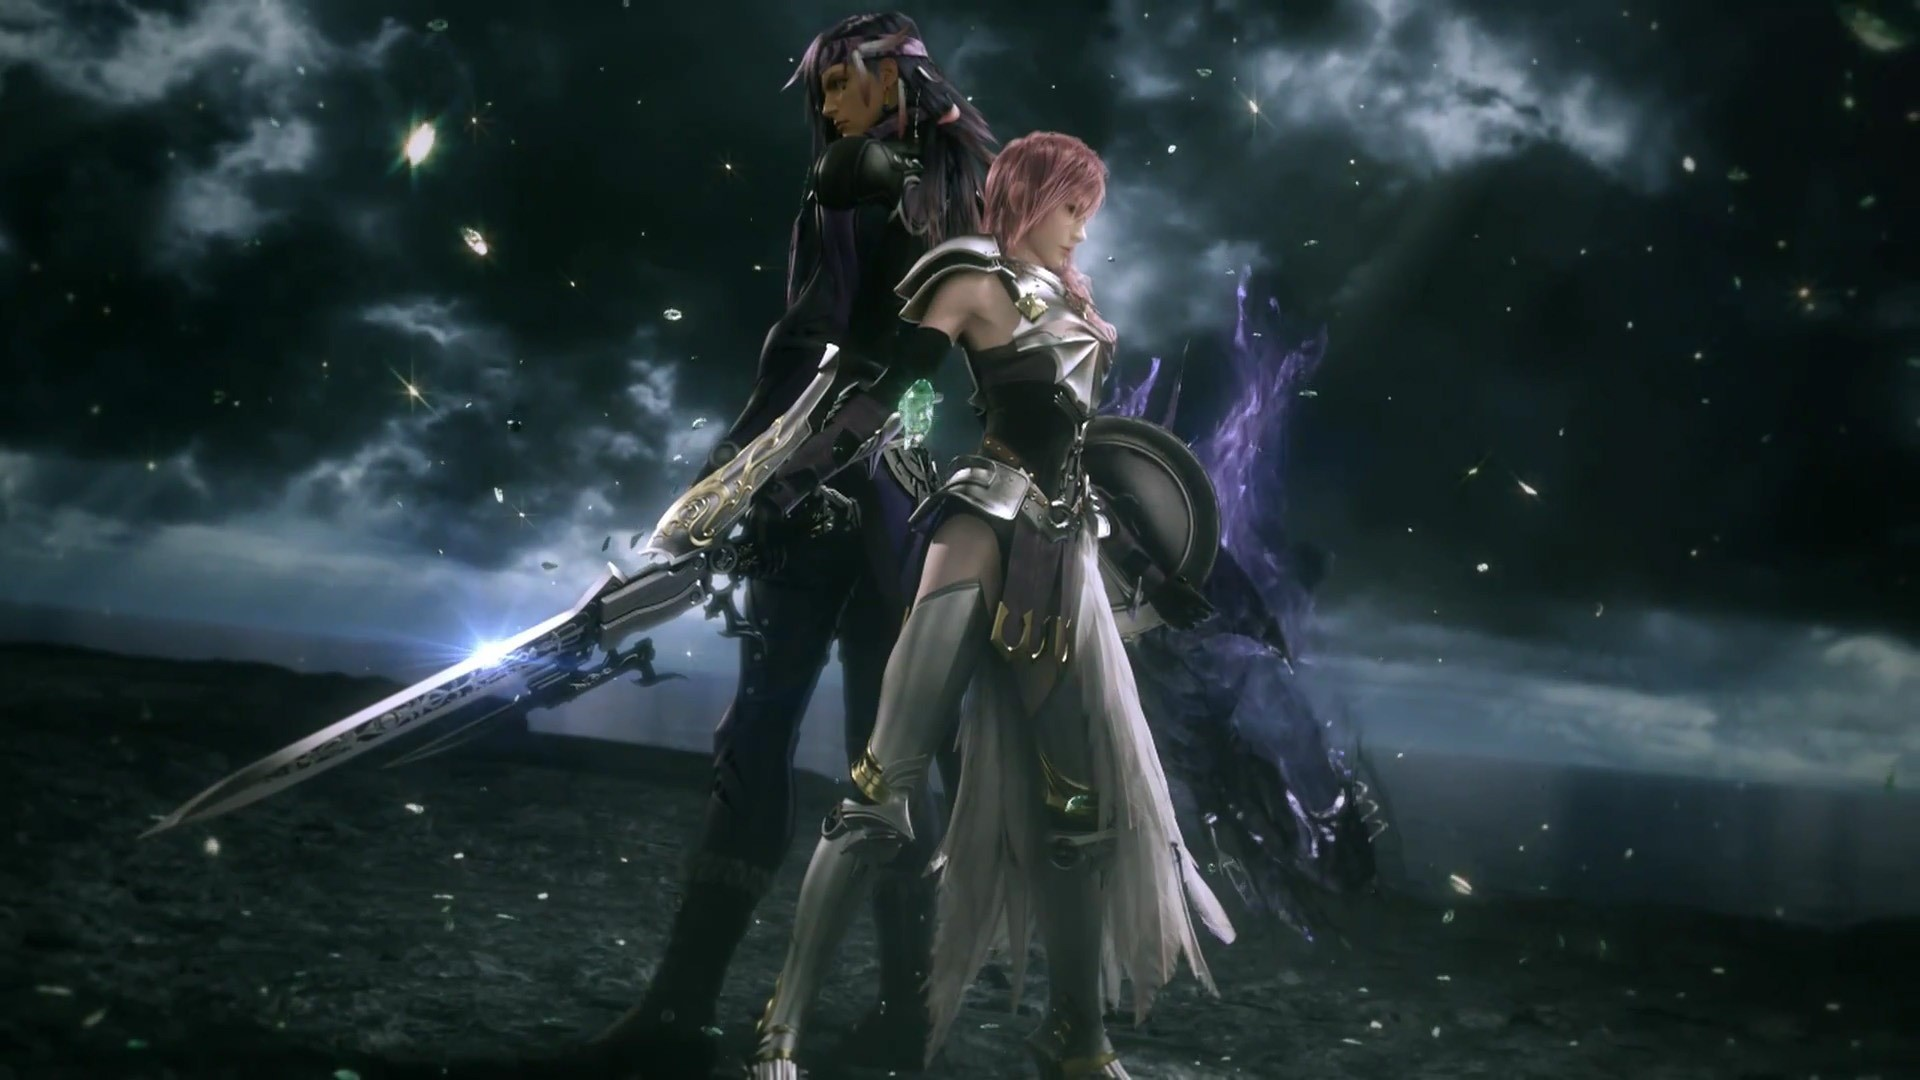 1920x1080 Final Fantasy XIII-2 HD Wallpaper #3 - .